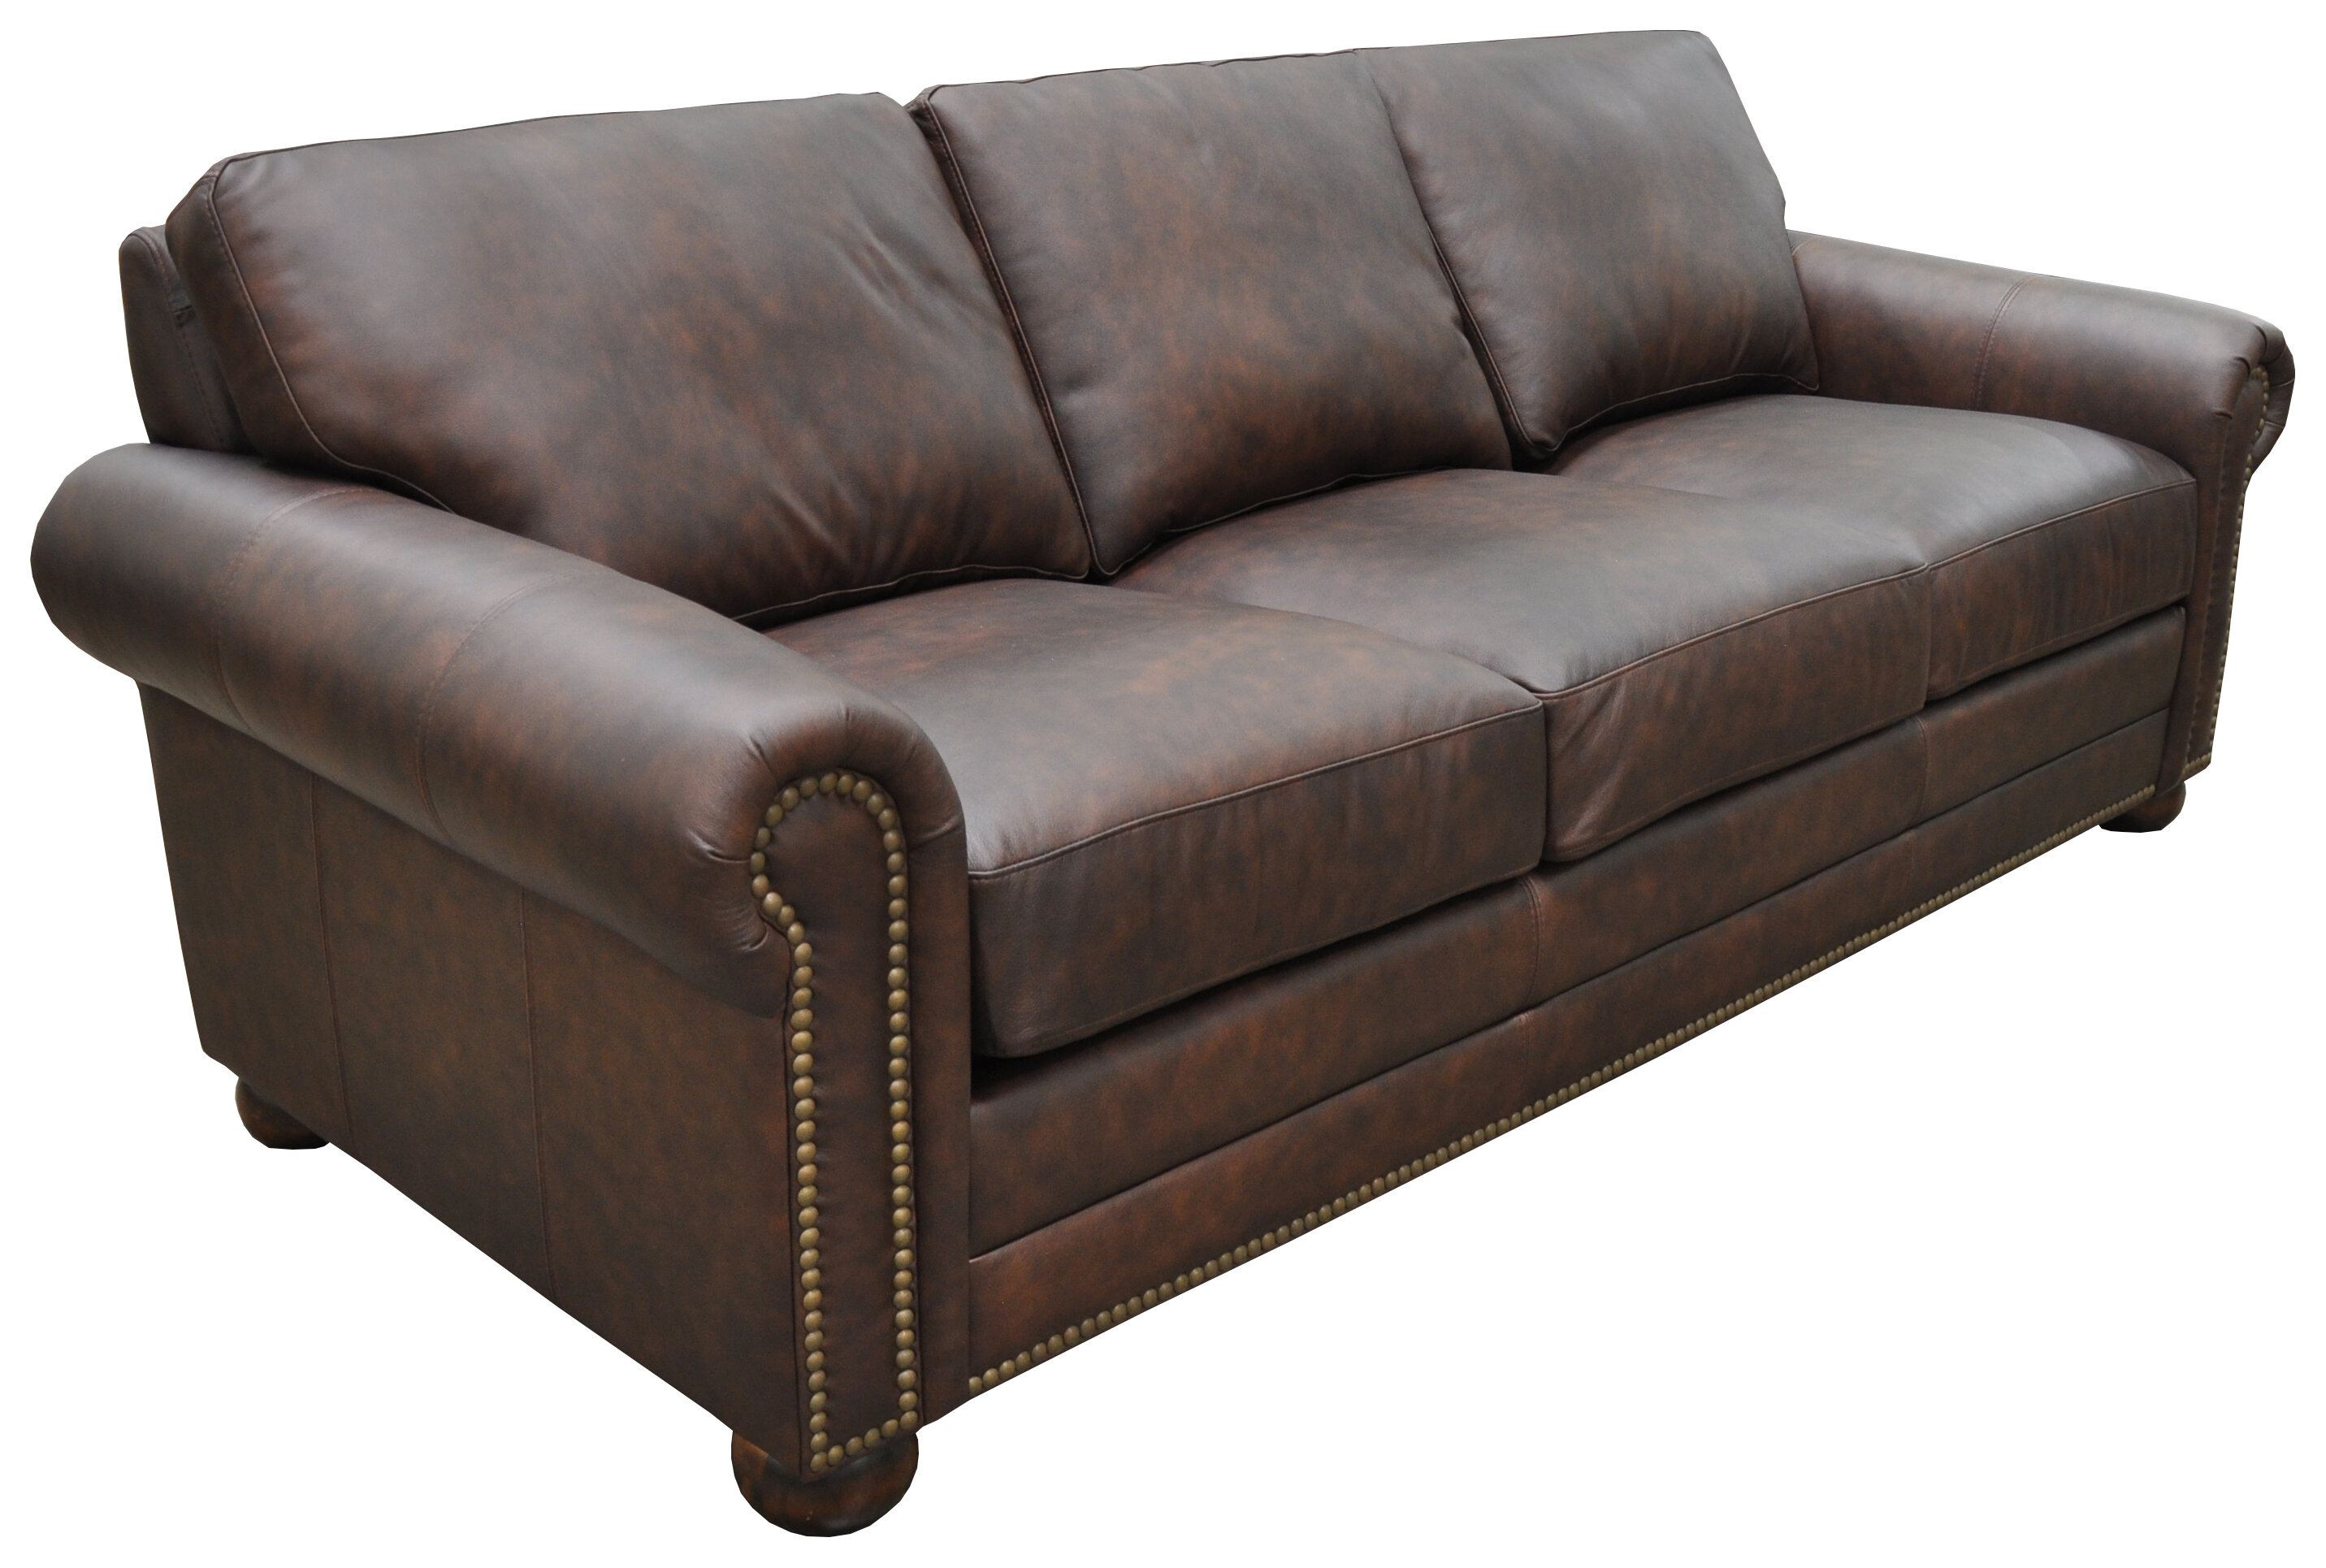 Athens Genuine Leather Chesterfield Sofa